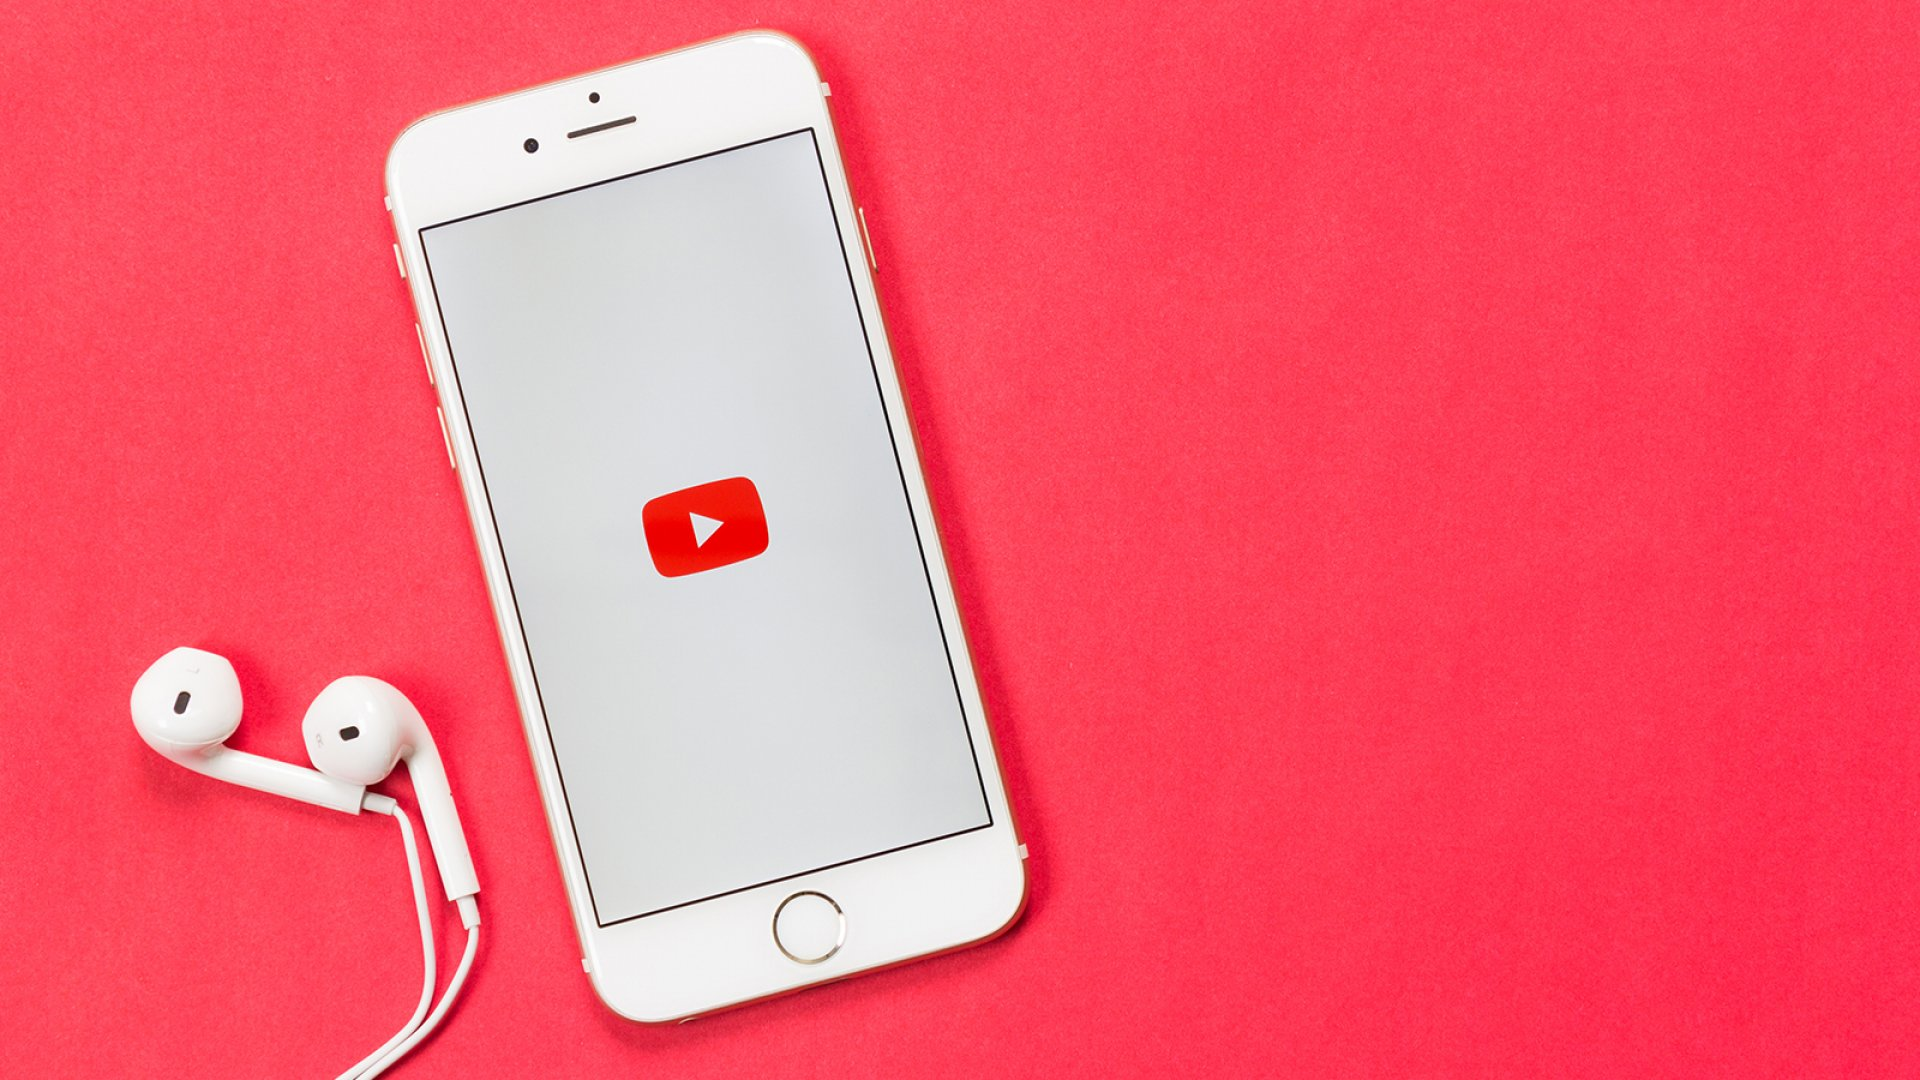 These YouTube Channels Prove the Service Can Inspire You and Help Grow Your Business